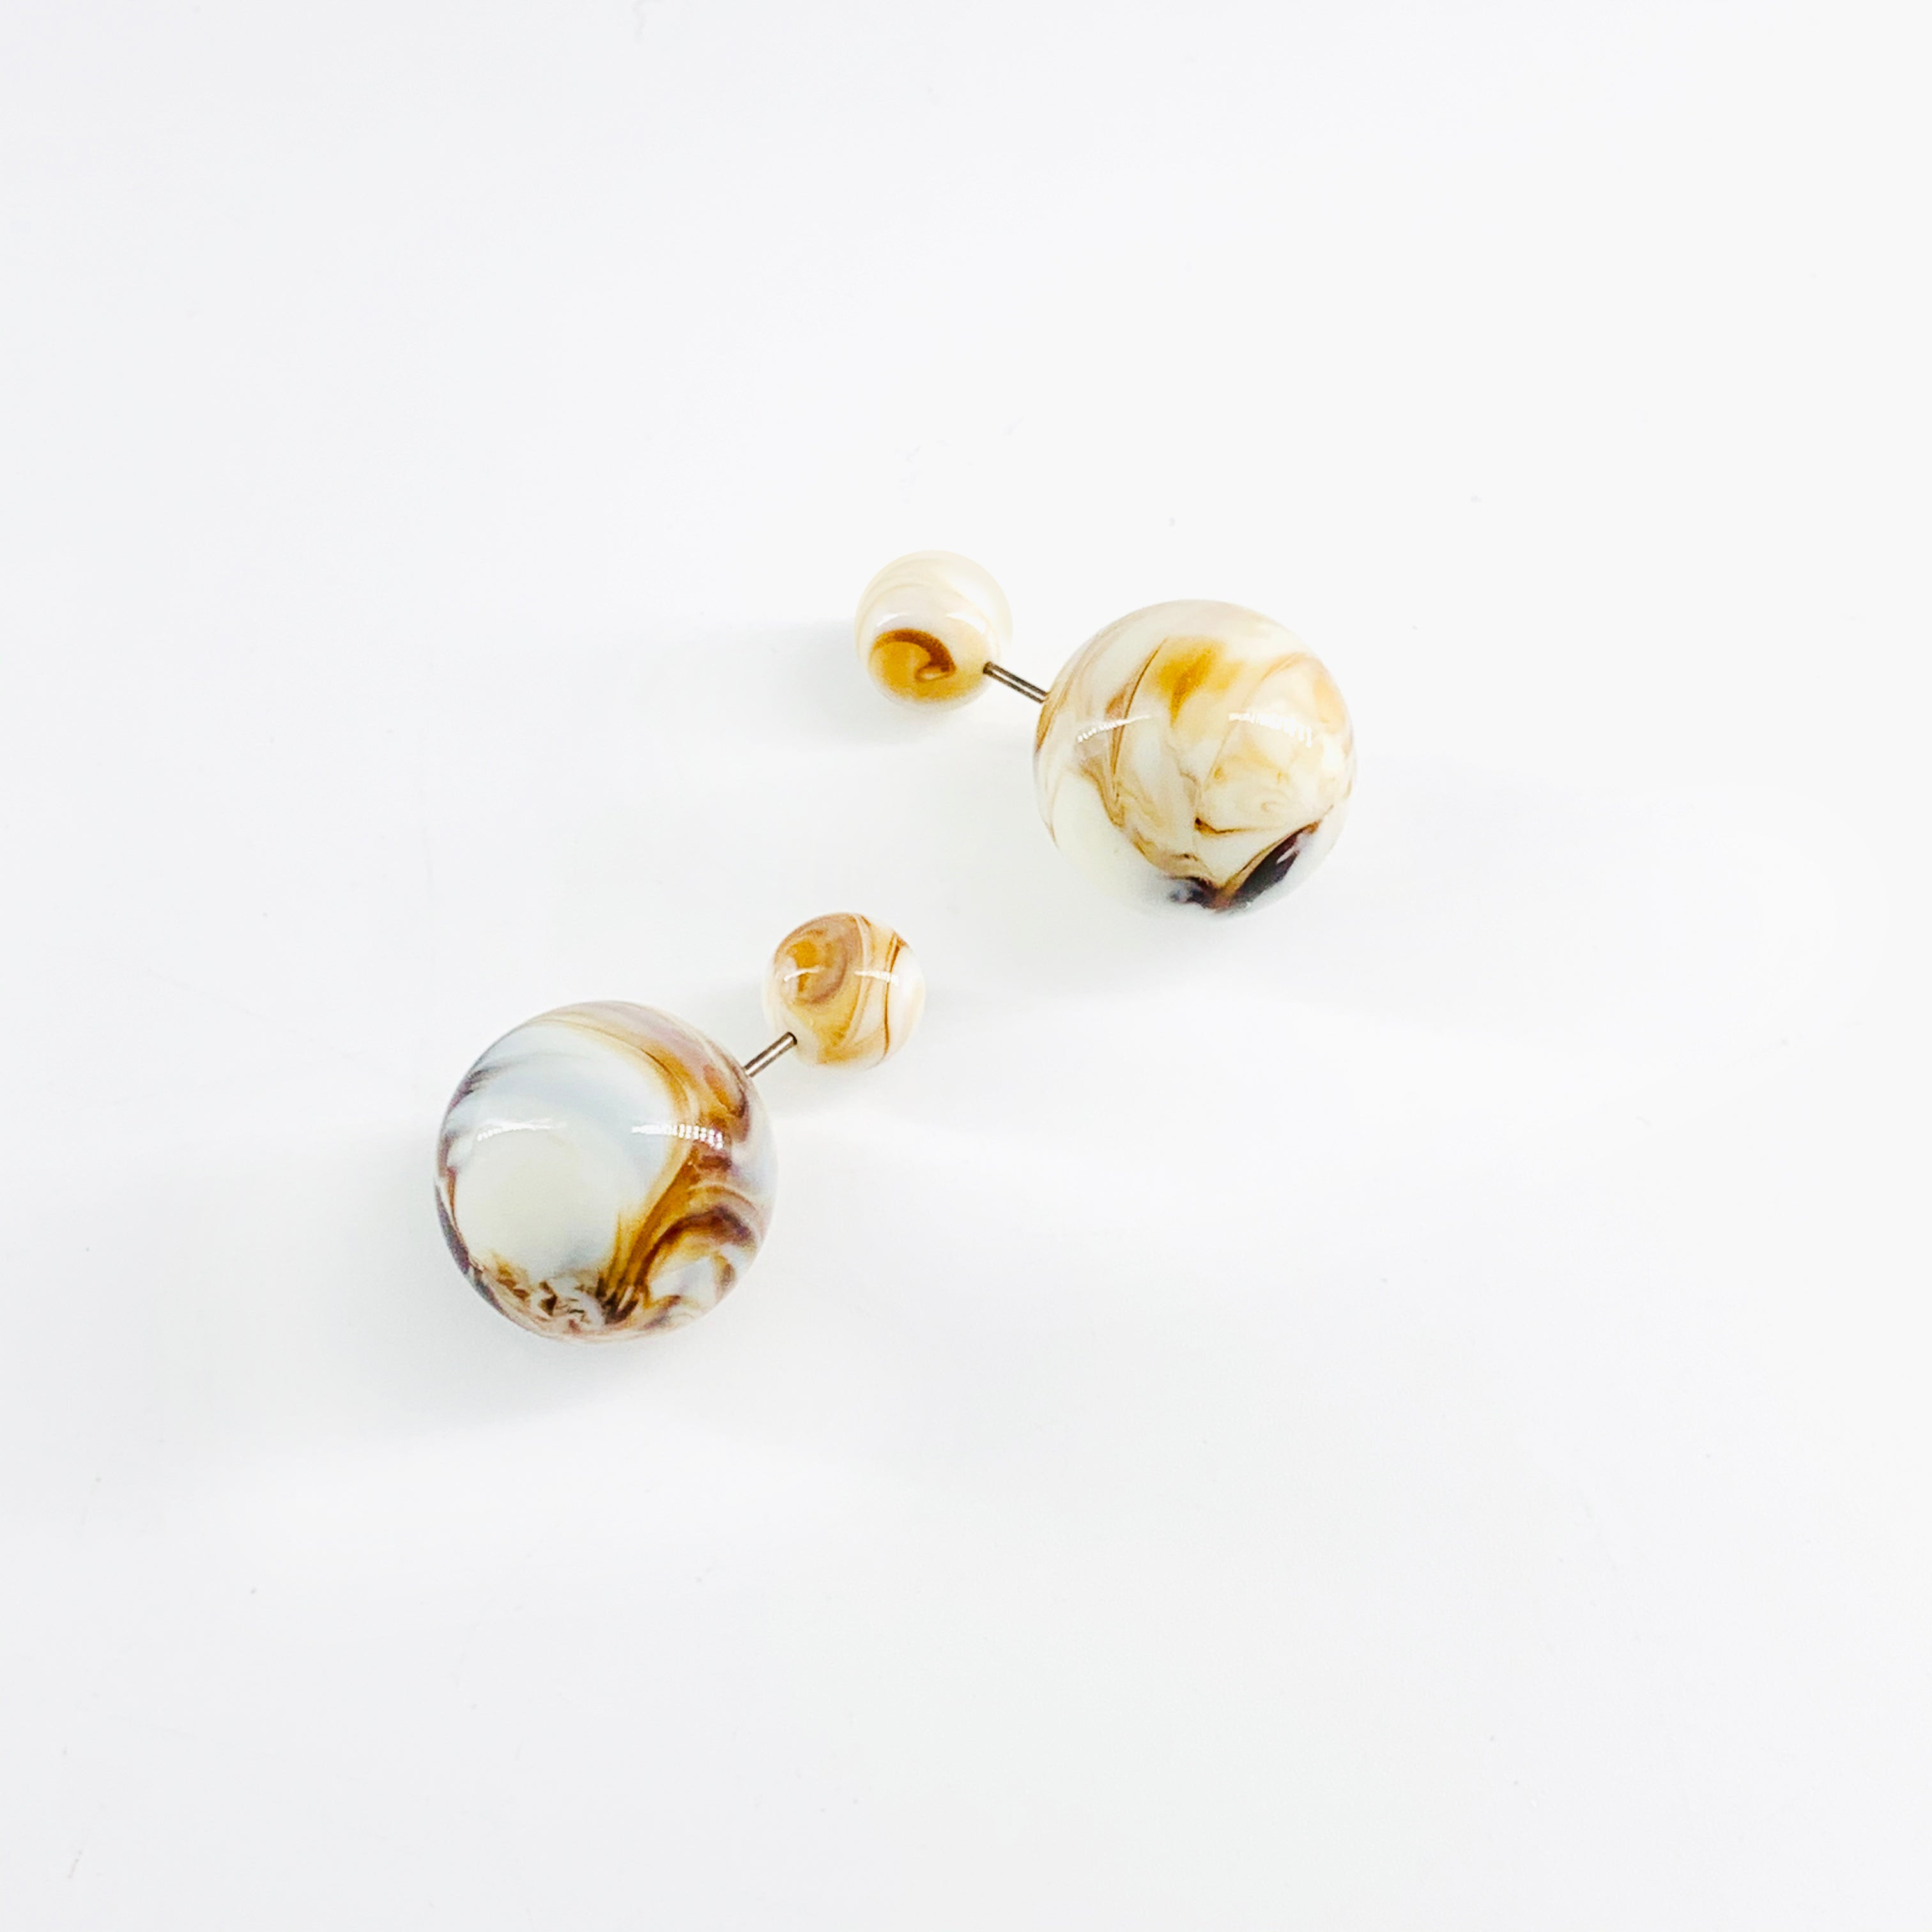 Dip-dyed marble ball earrings in brown and white